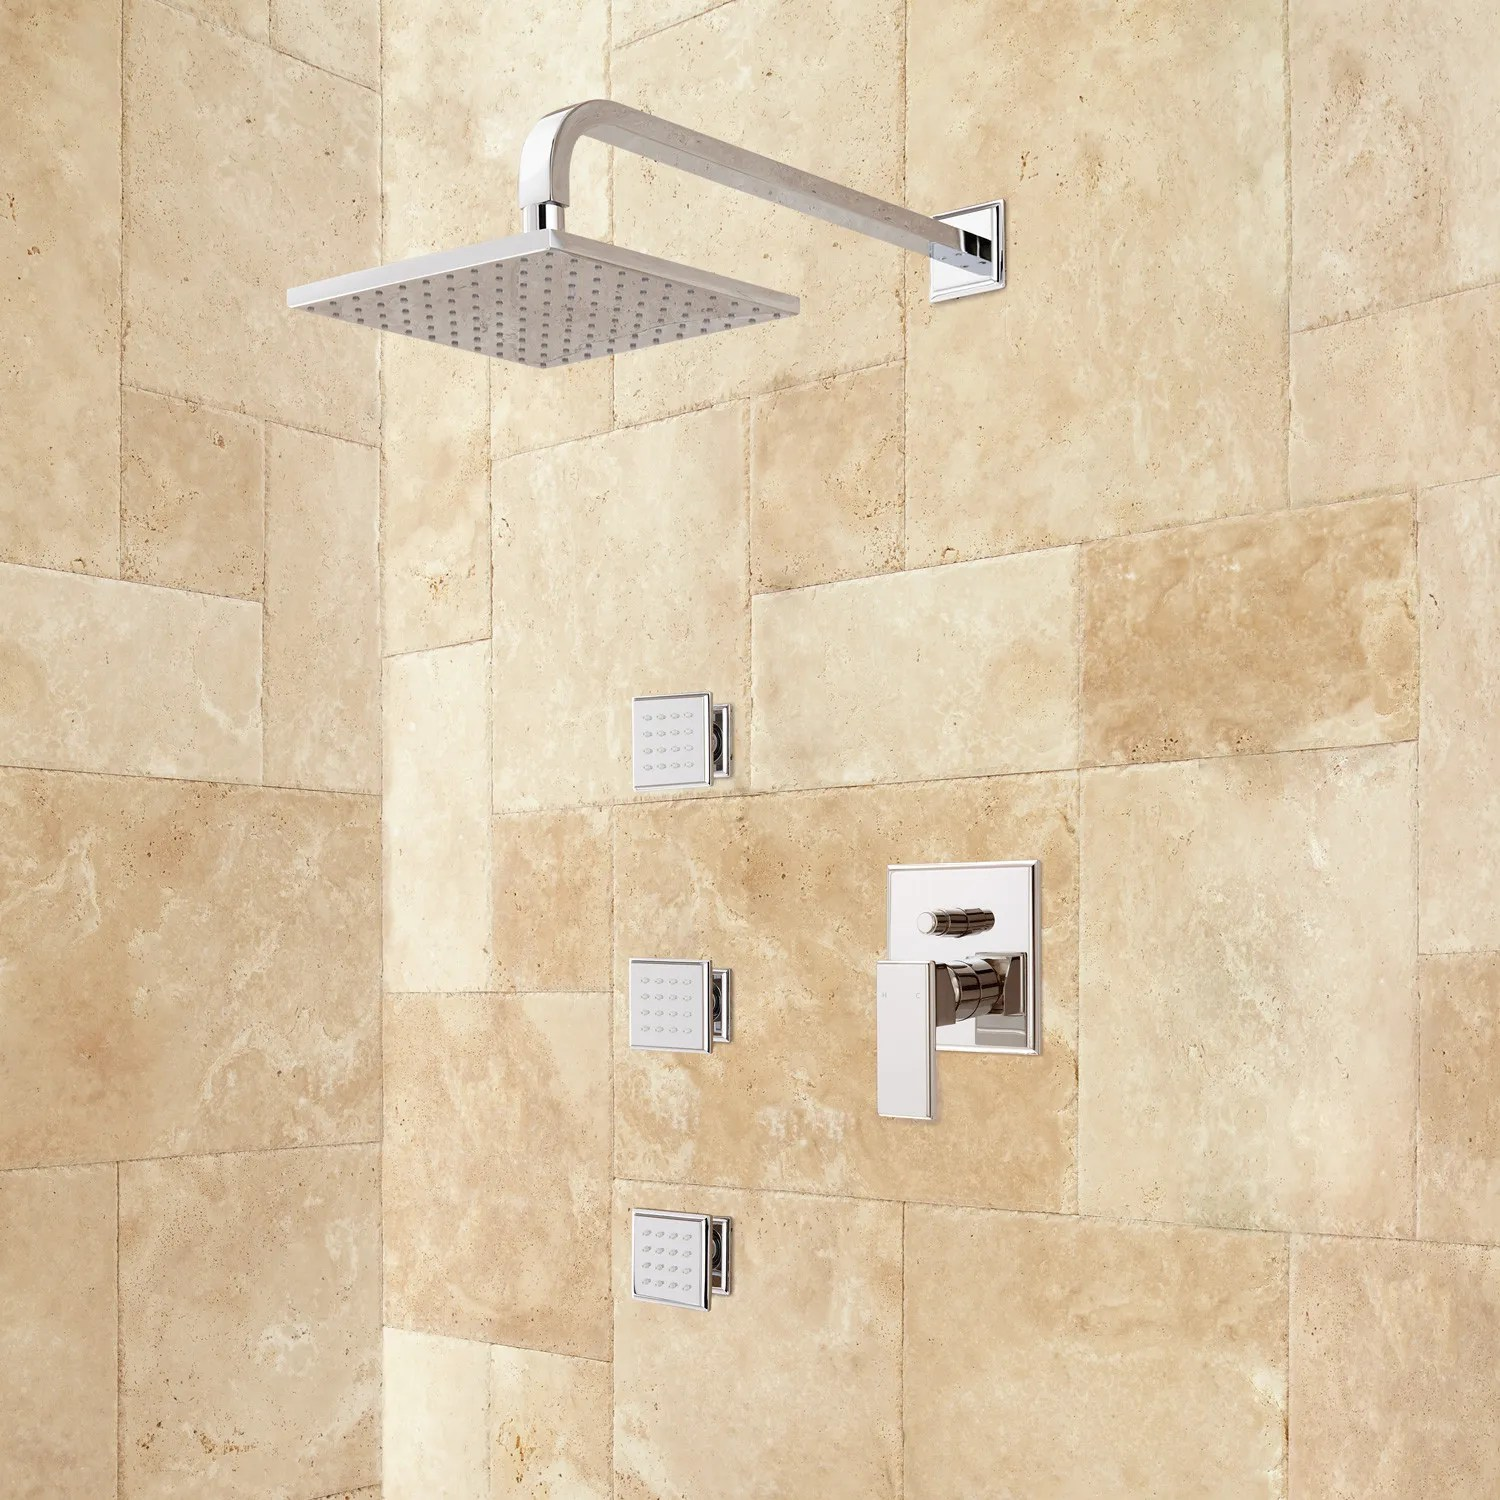 Ryle WallMount Rainfall Shower Set with Body Jets  Shower  Bathroom